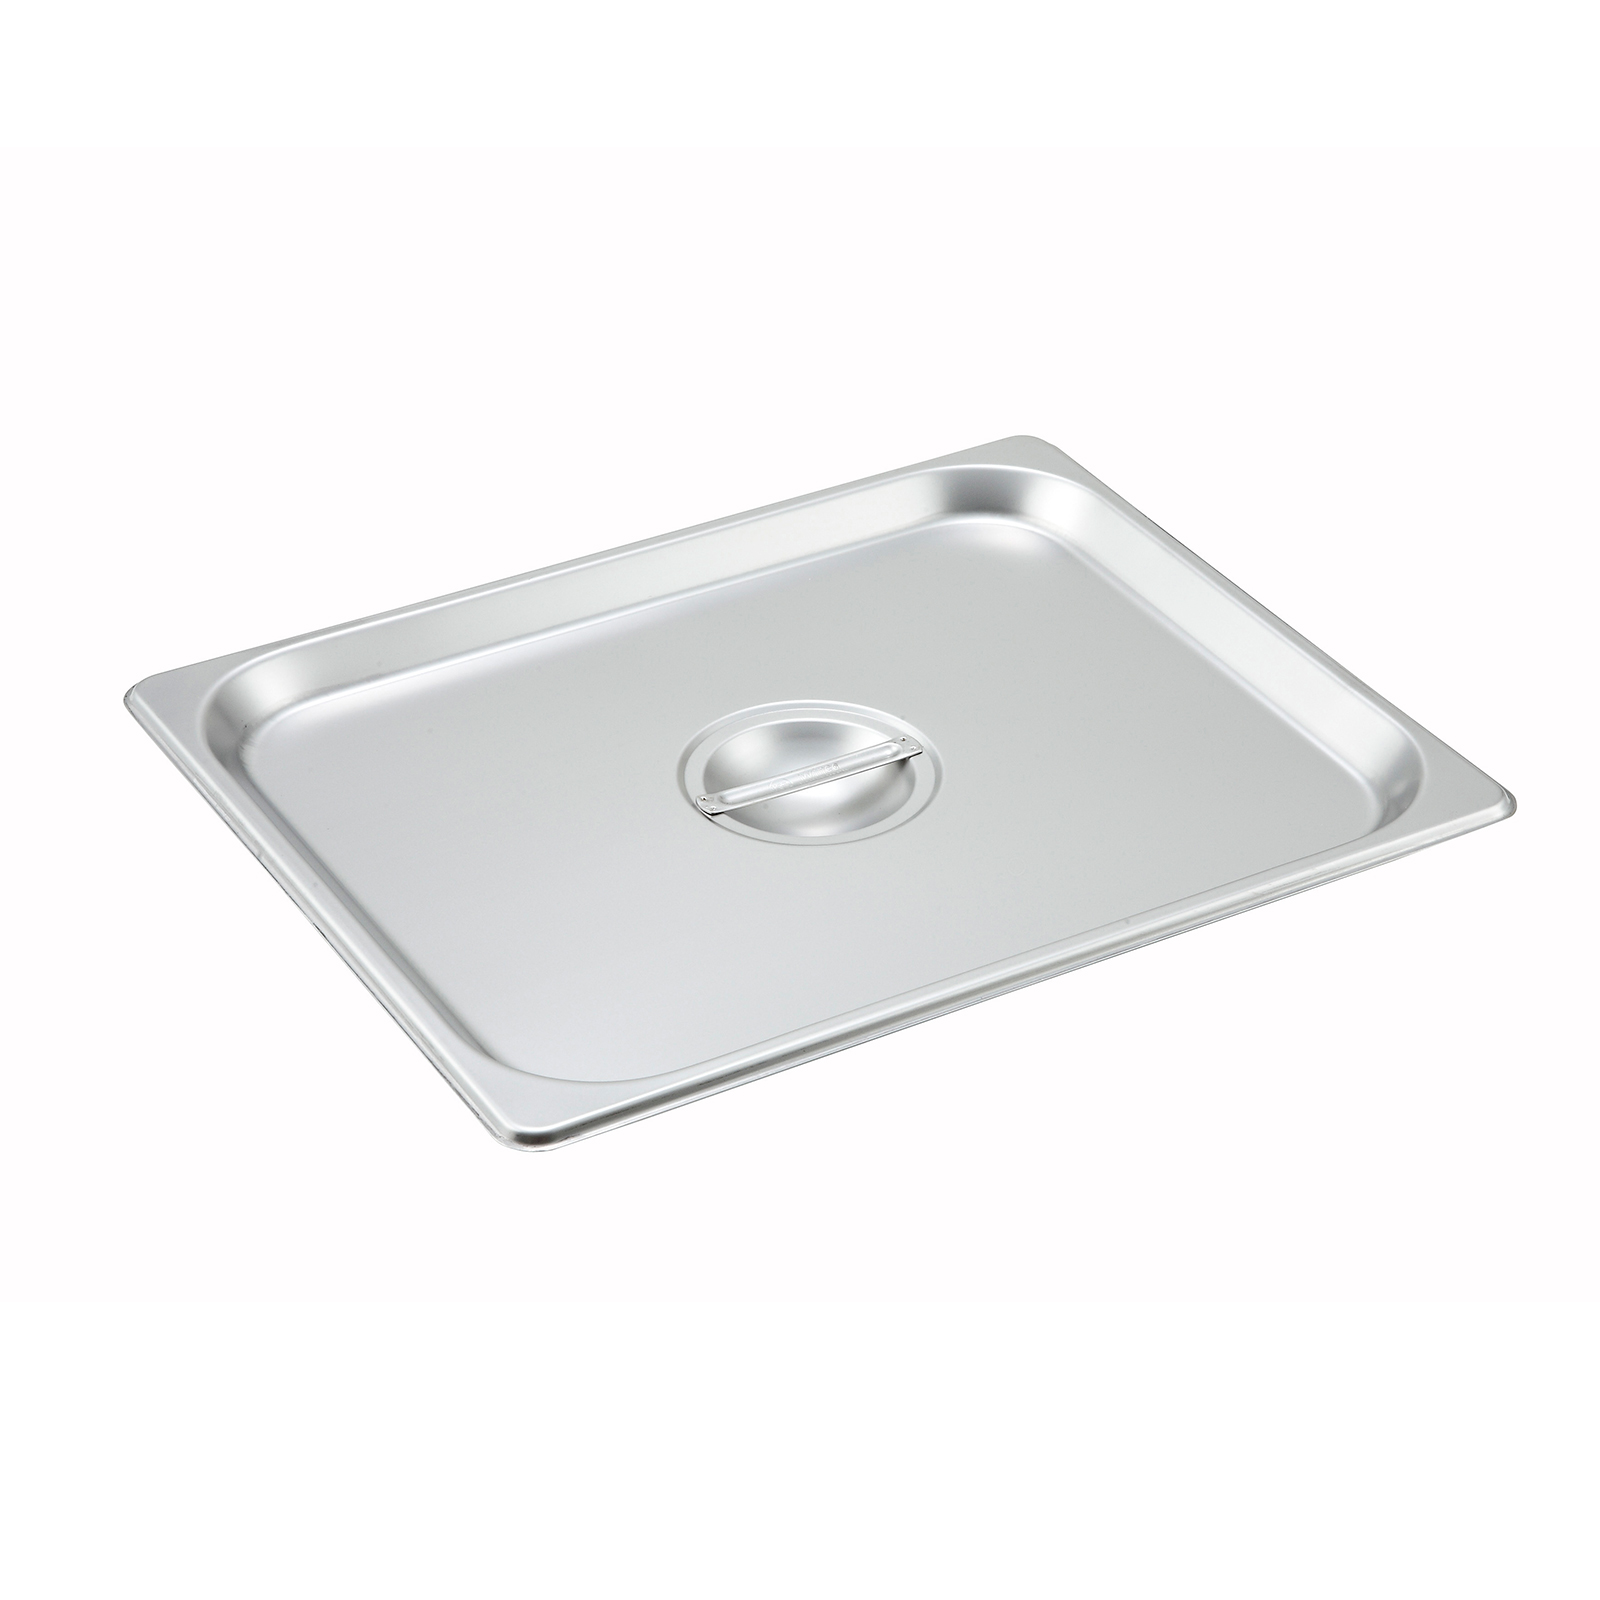 2400-1251 Winco SPSCH steam table pan cover, stainless steel